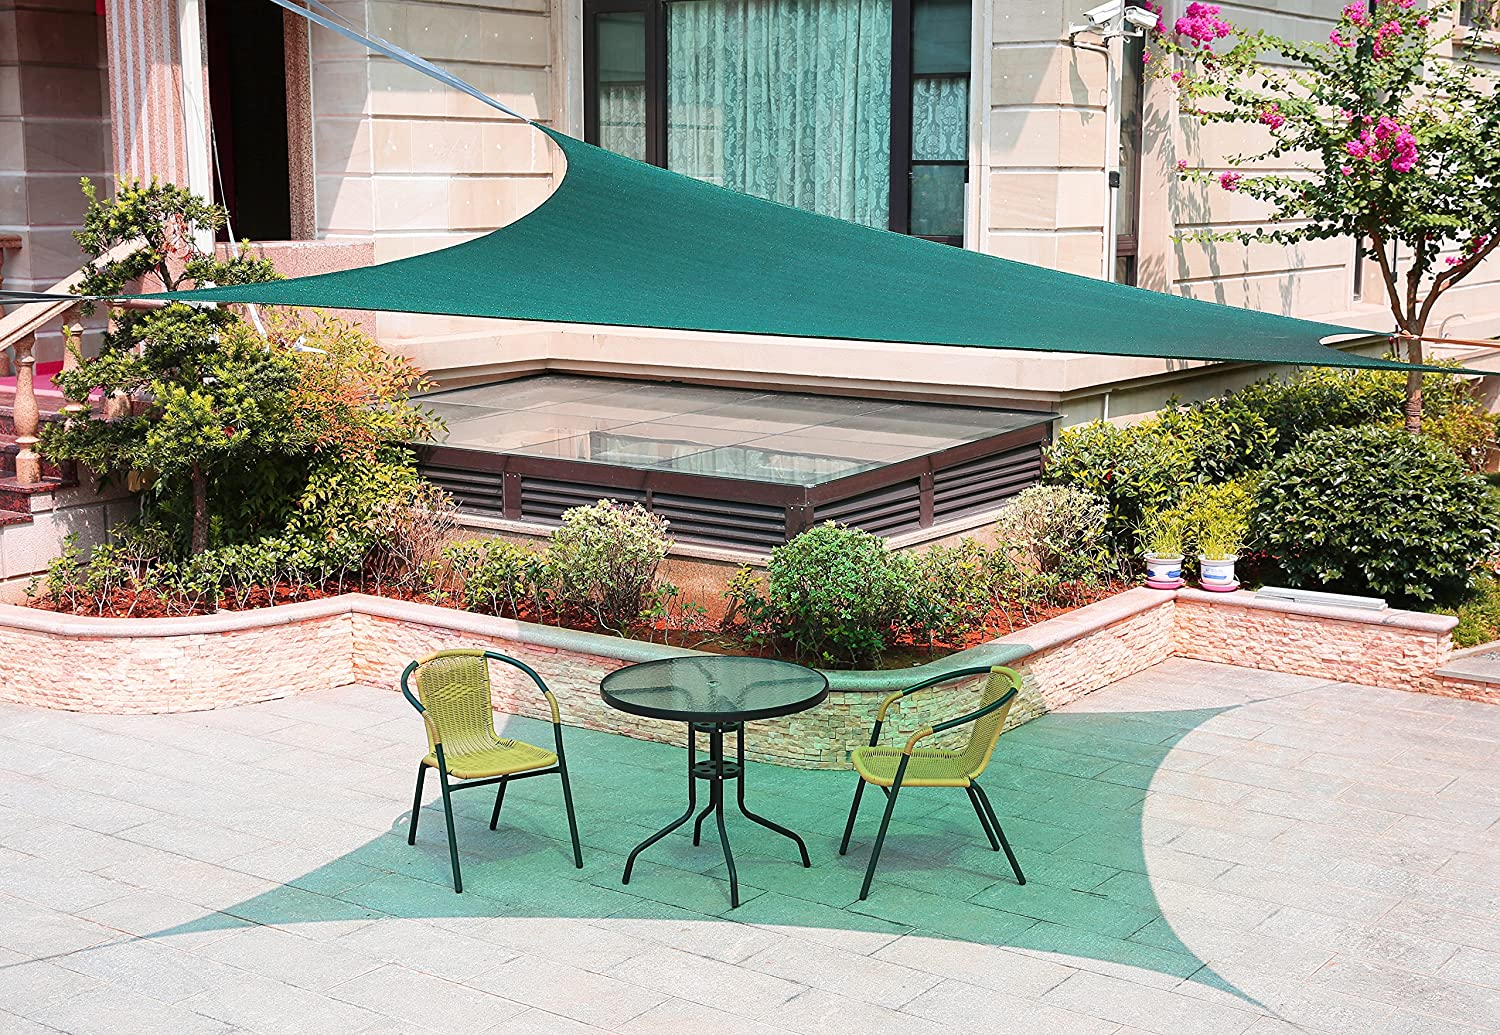 LyShade 13 x 9 10 Rectangle Sun Shade Sail Canopy with Stainless Steel Hardware Kit – UV Block for Patio and Outdoor Blue